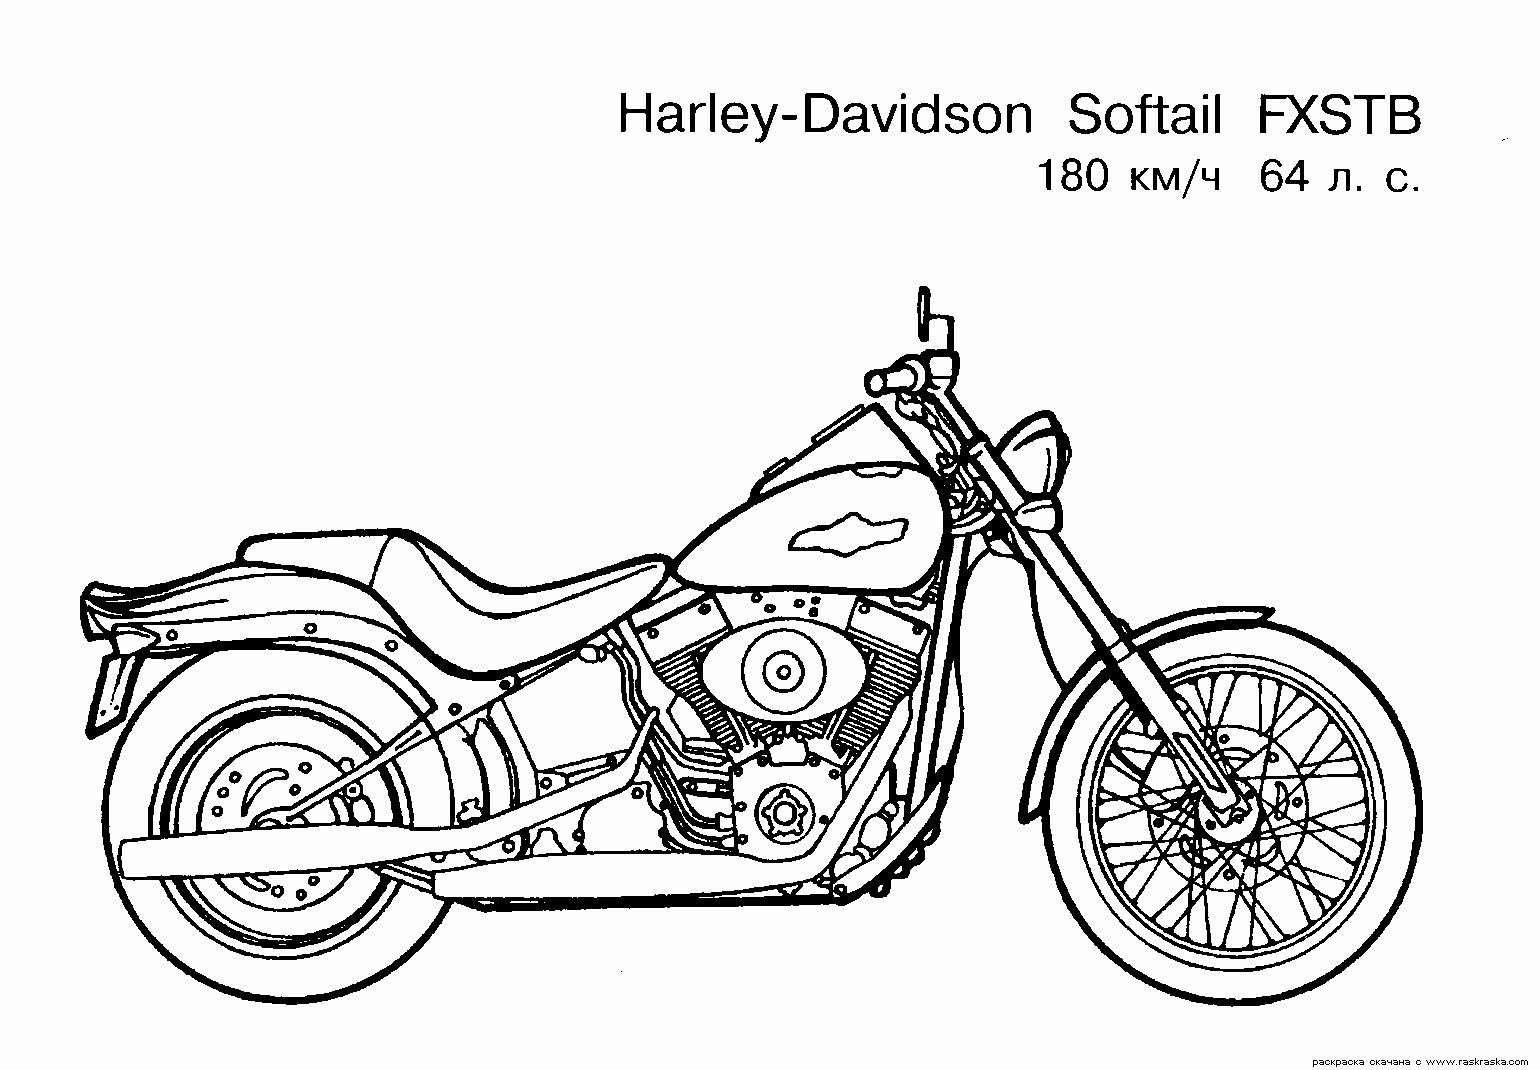 Motorcycle Coloring Pages To Print Lovely Dirt Bike Racing Coloring Pages Fierce Rider Dirt Bike Coloring Pages Holiday Coloring Book Coloring Pages To Print